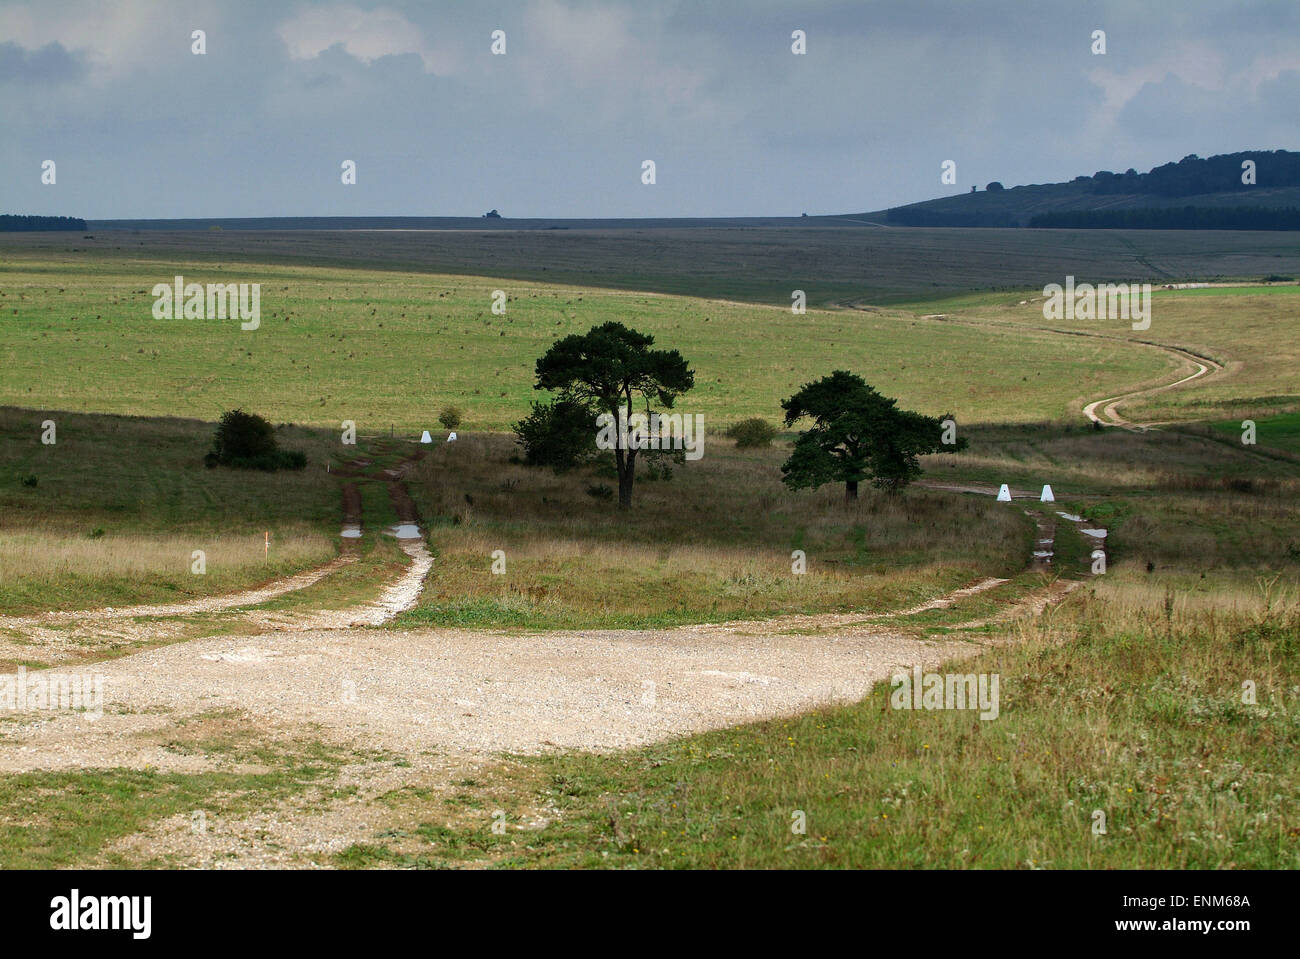 Salisbury Plain, Wiltshire, UK, used as a military training area by the British Army. Pictures show redundant Chieftan - Stock Image